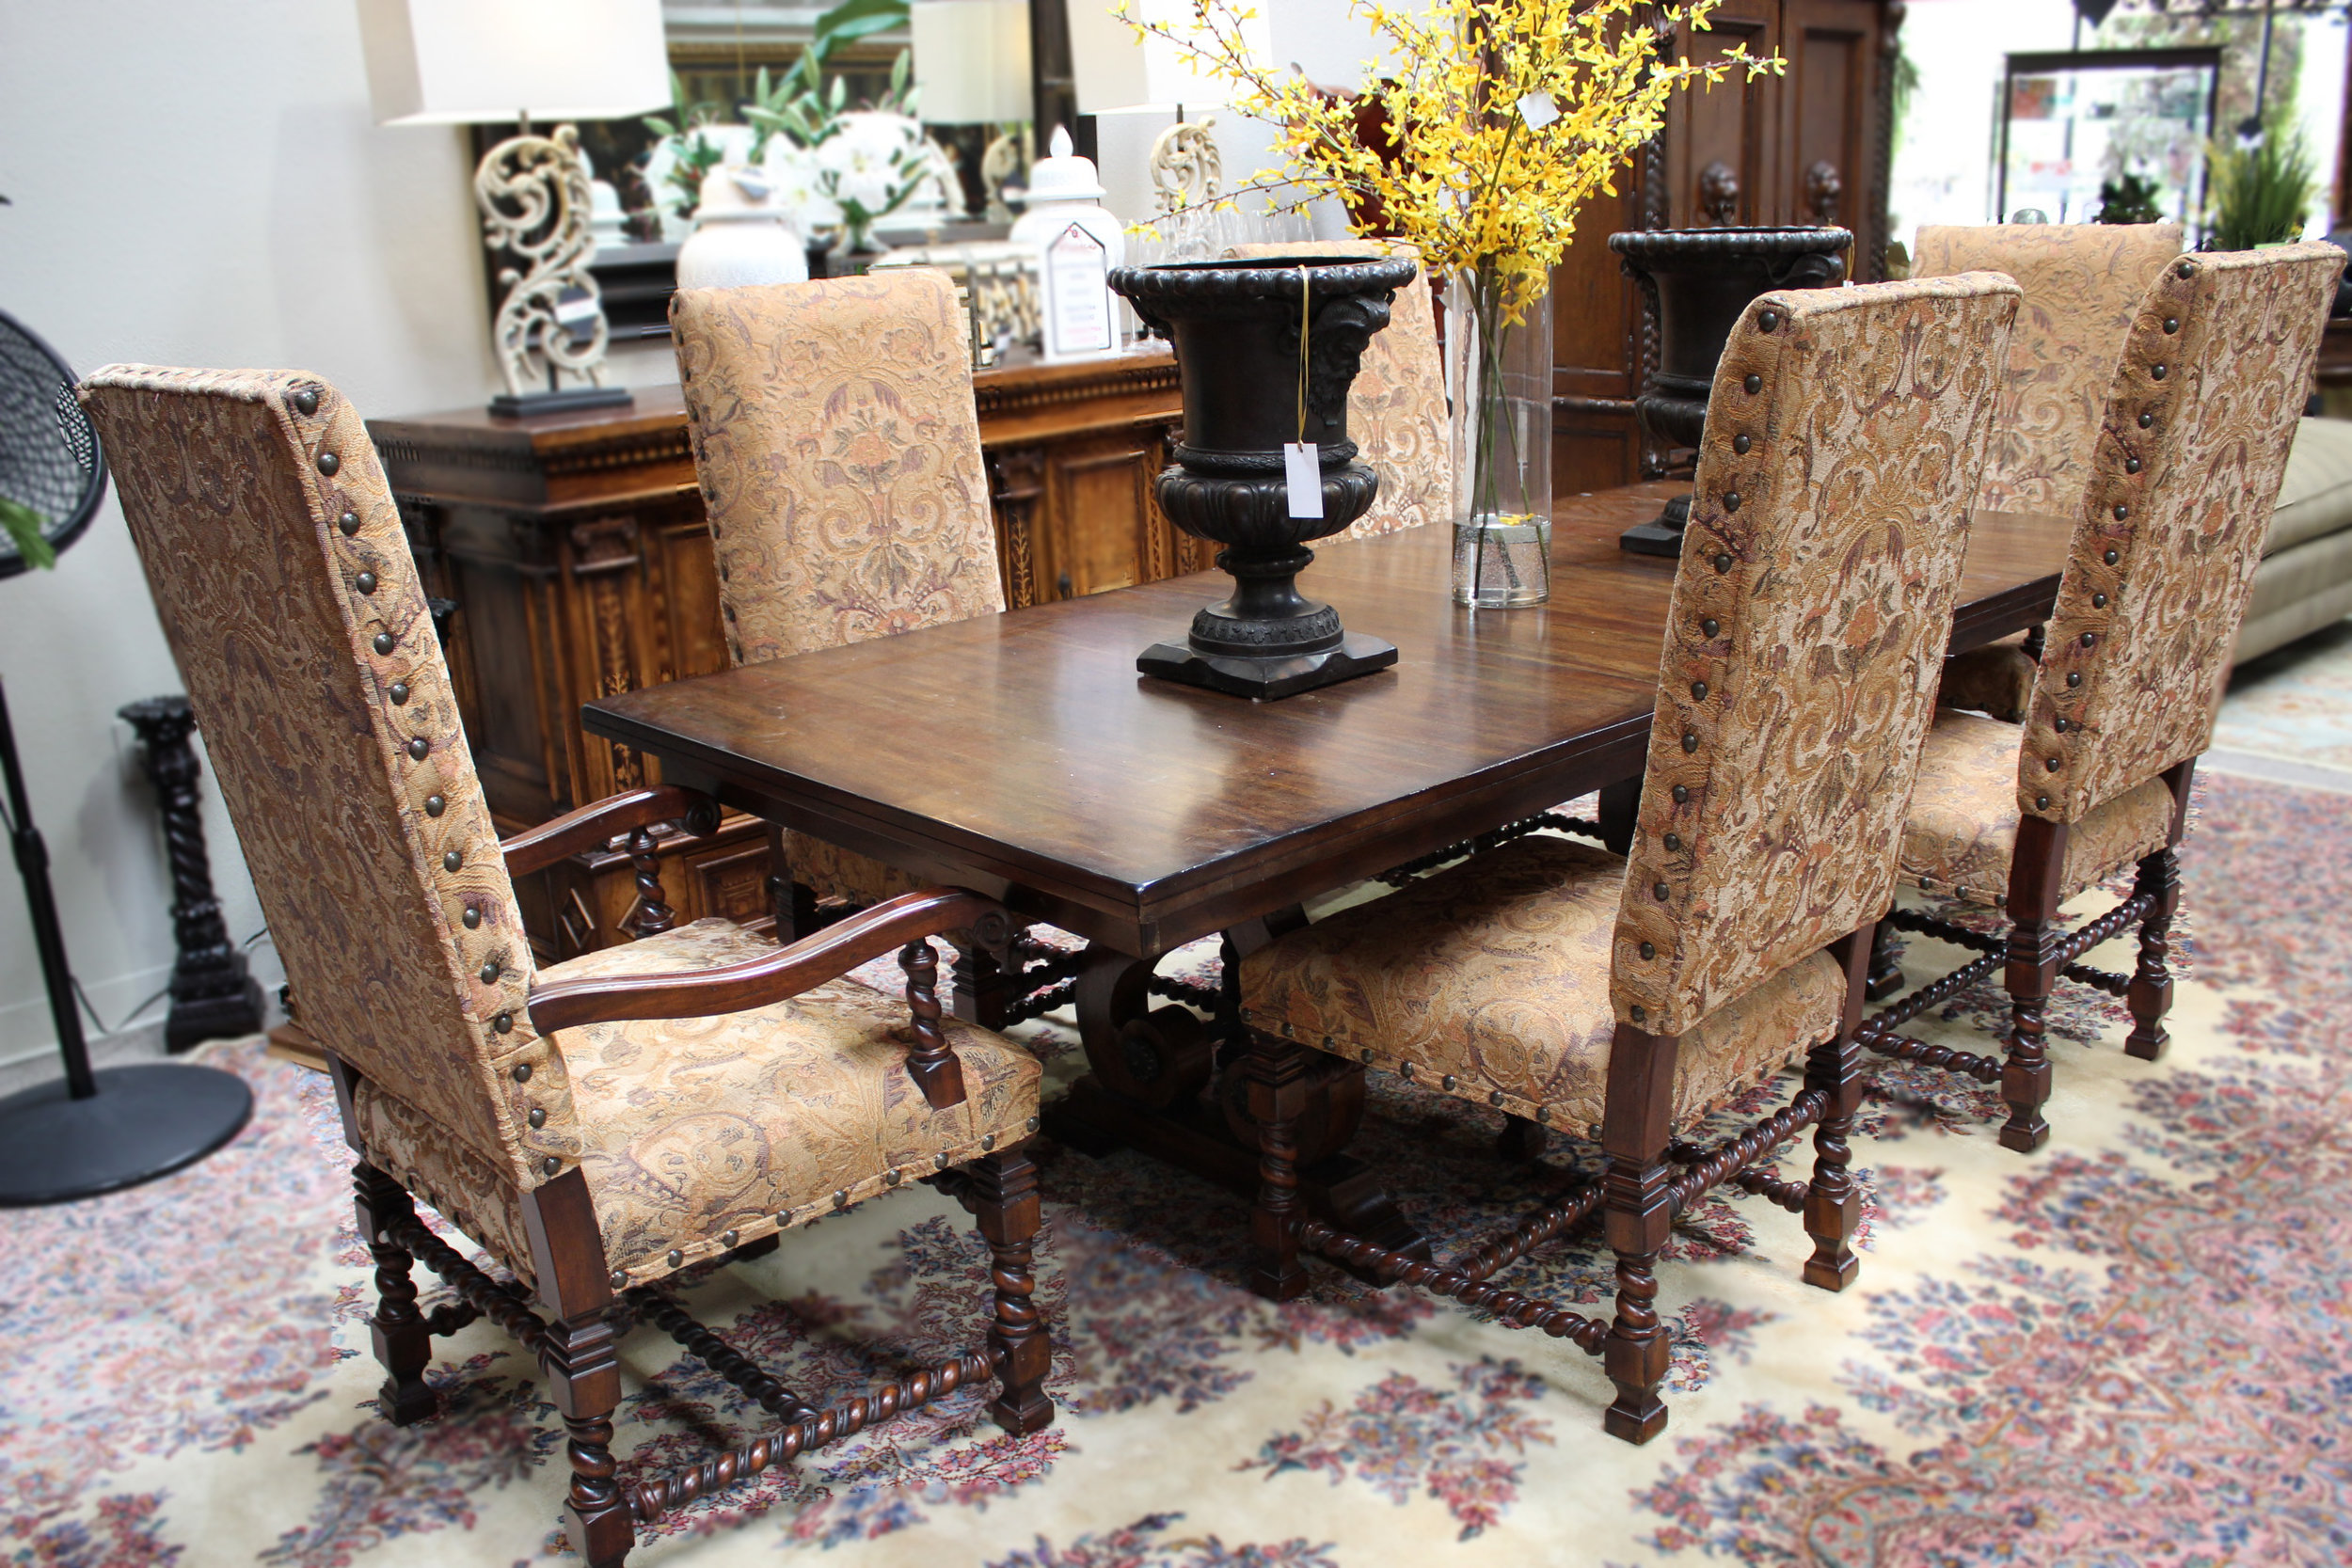 A America Dining Table with 1 Leaf and 6 chairs